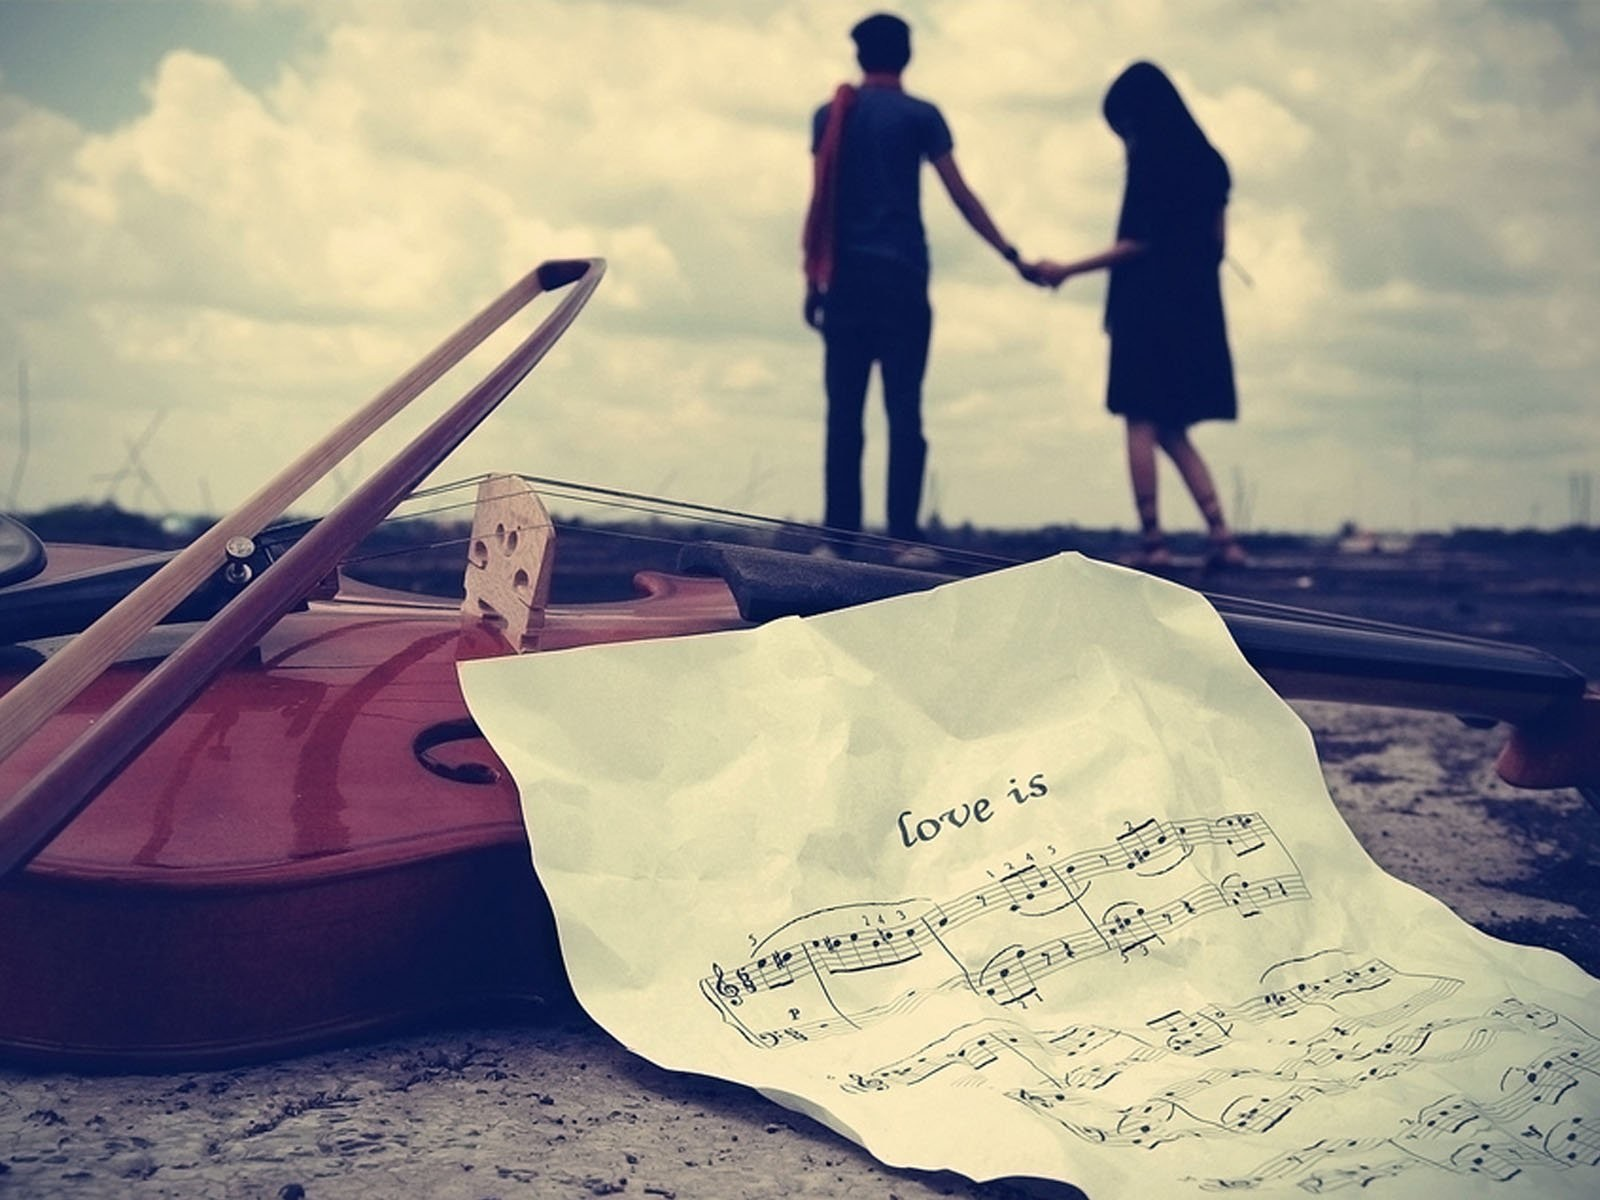 Popular Wallpaper High Quality Couple - love-free-image_105707319  Collection_542182.jpg